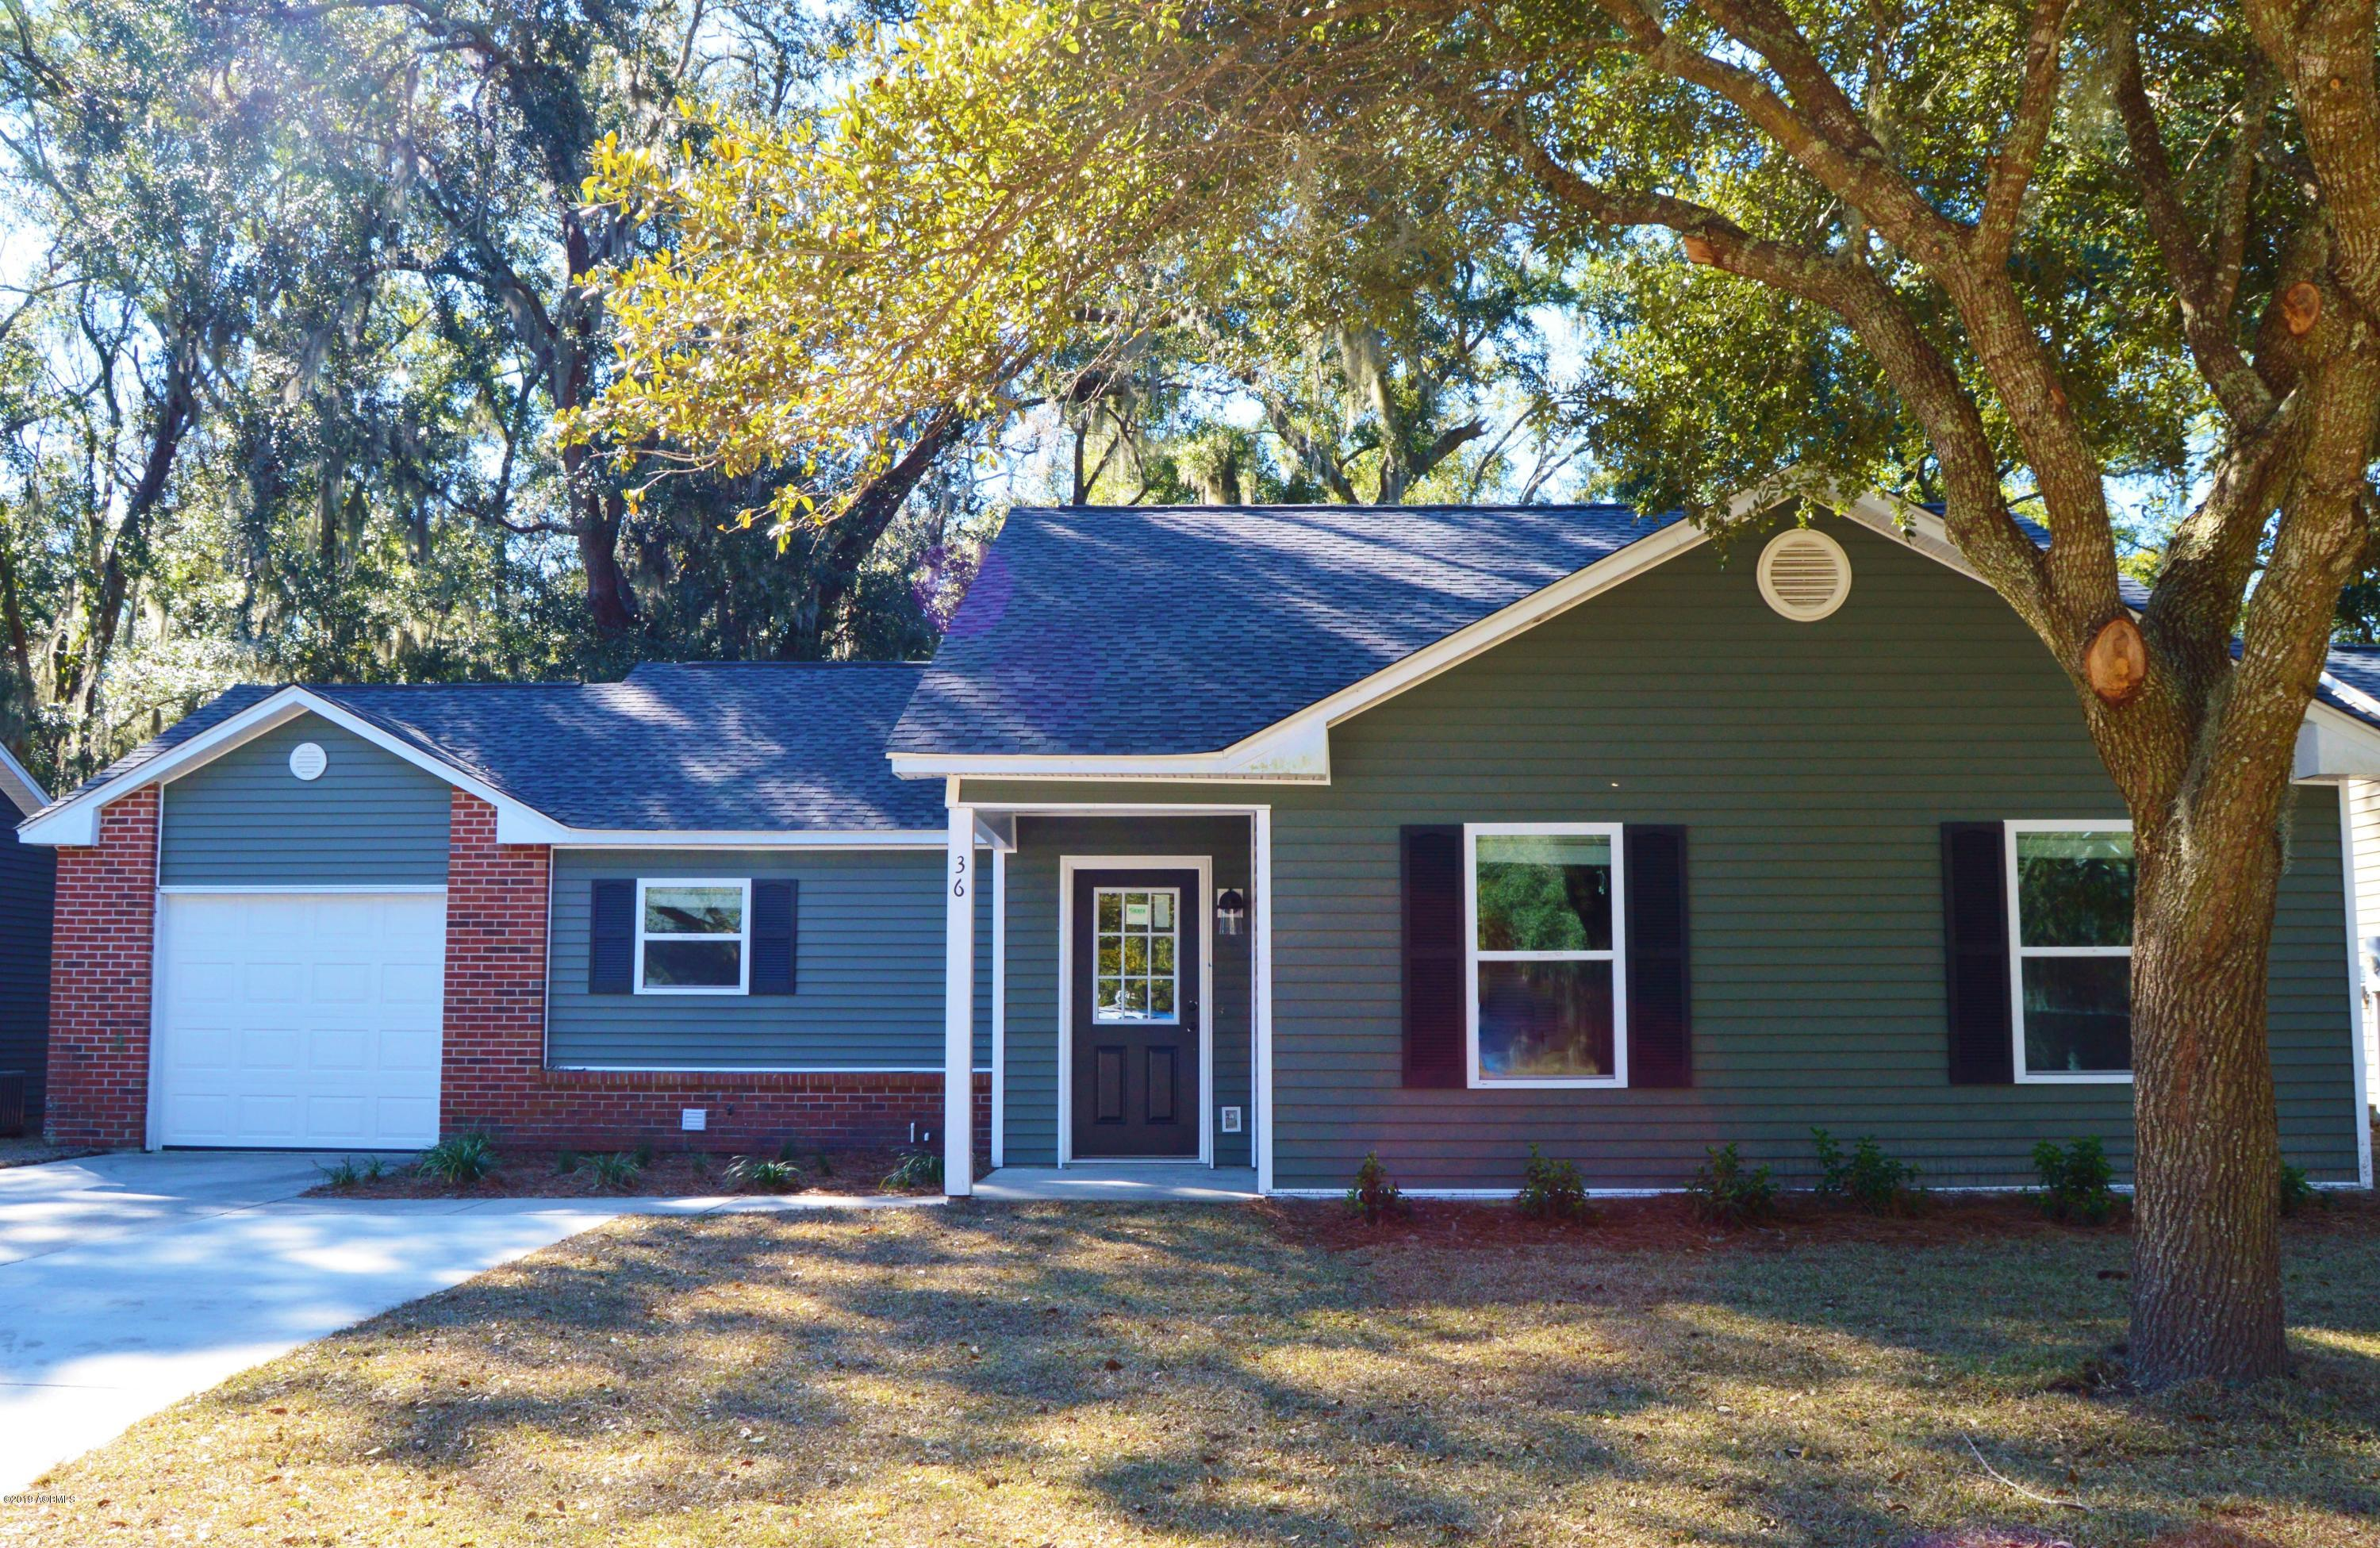 Photo of 36 Brindlewood Drive, Beaufort, SC 29907